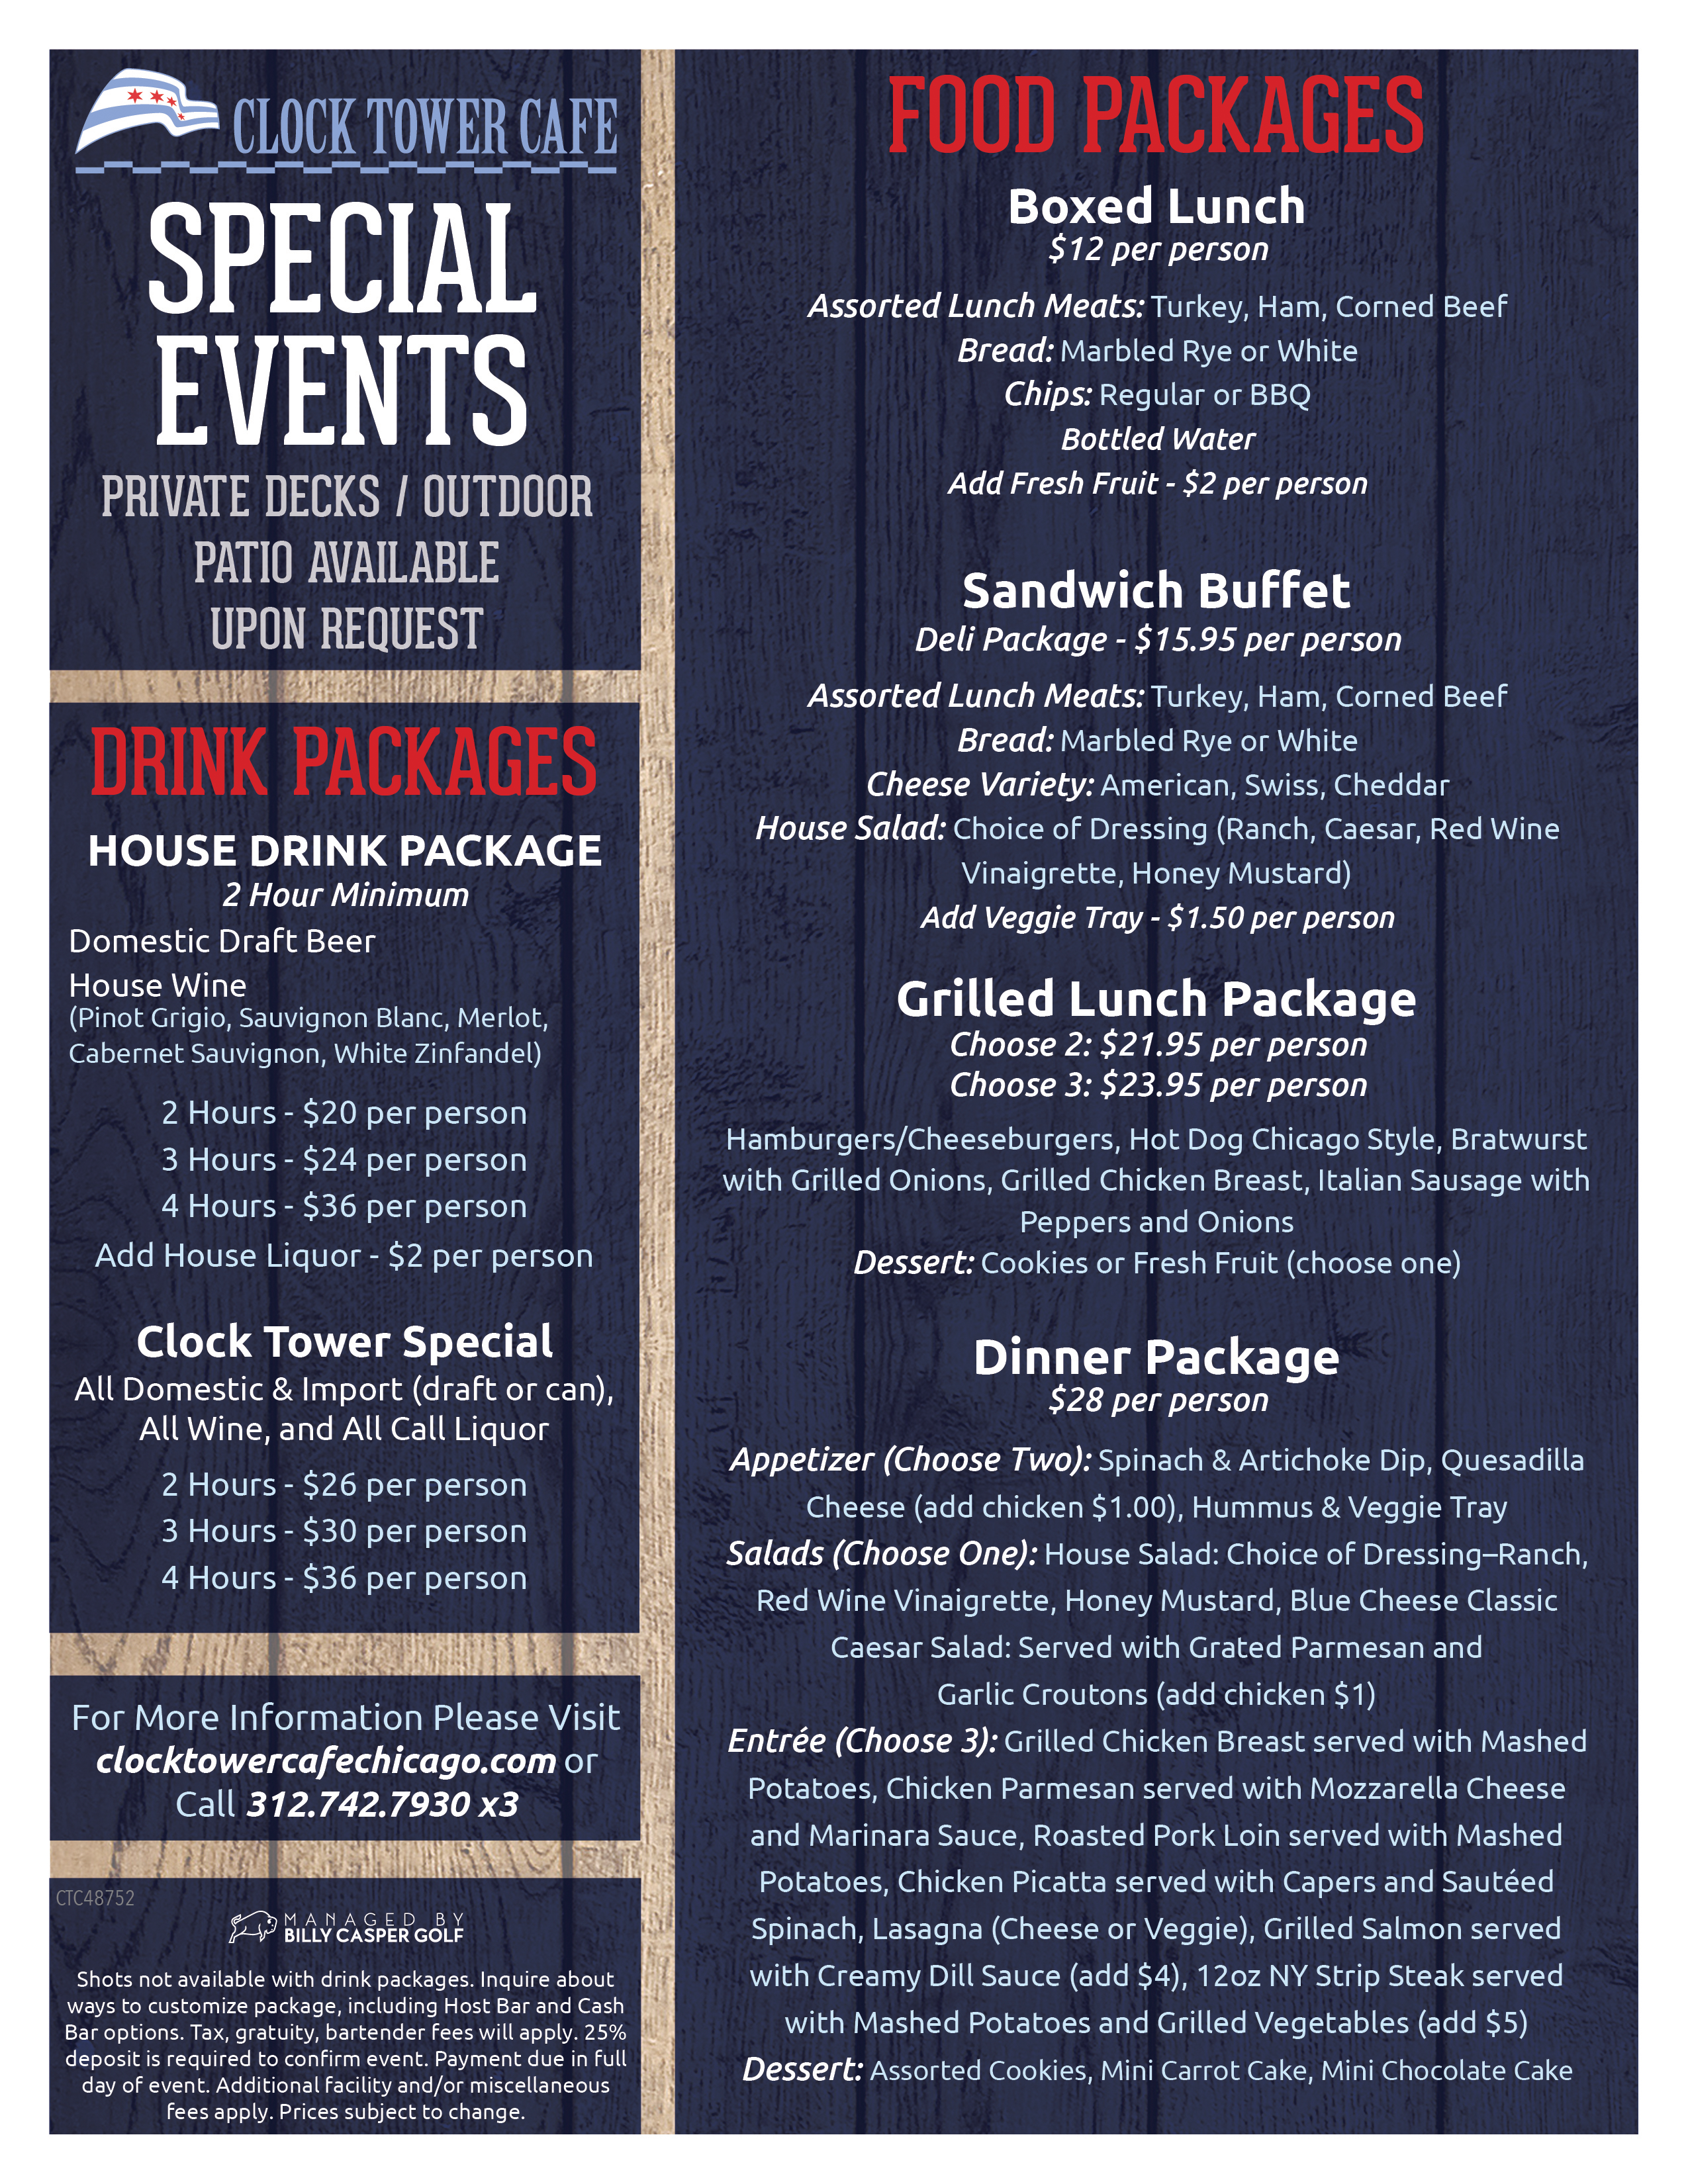 Clock Tower Cafe Banquet Packages